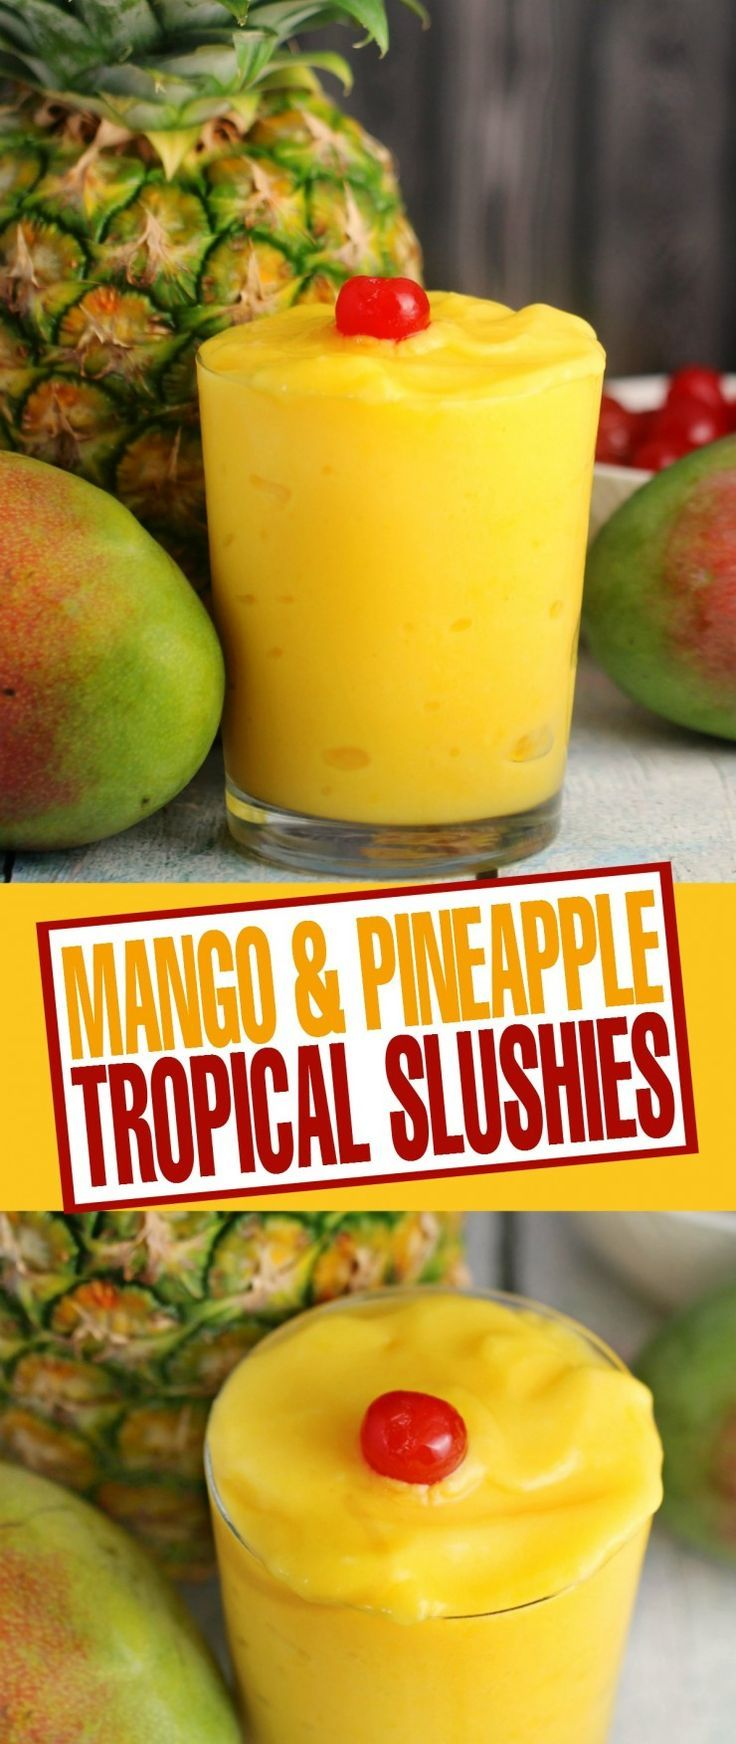 With summer on the way, these Mango & Pineapple Tropical Slushies are a refreshing drink to help you cool down. Plus they are healthy too!